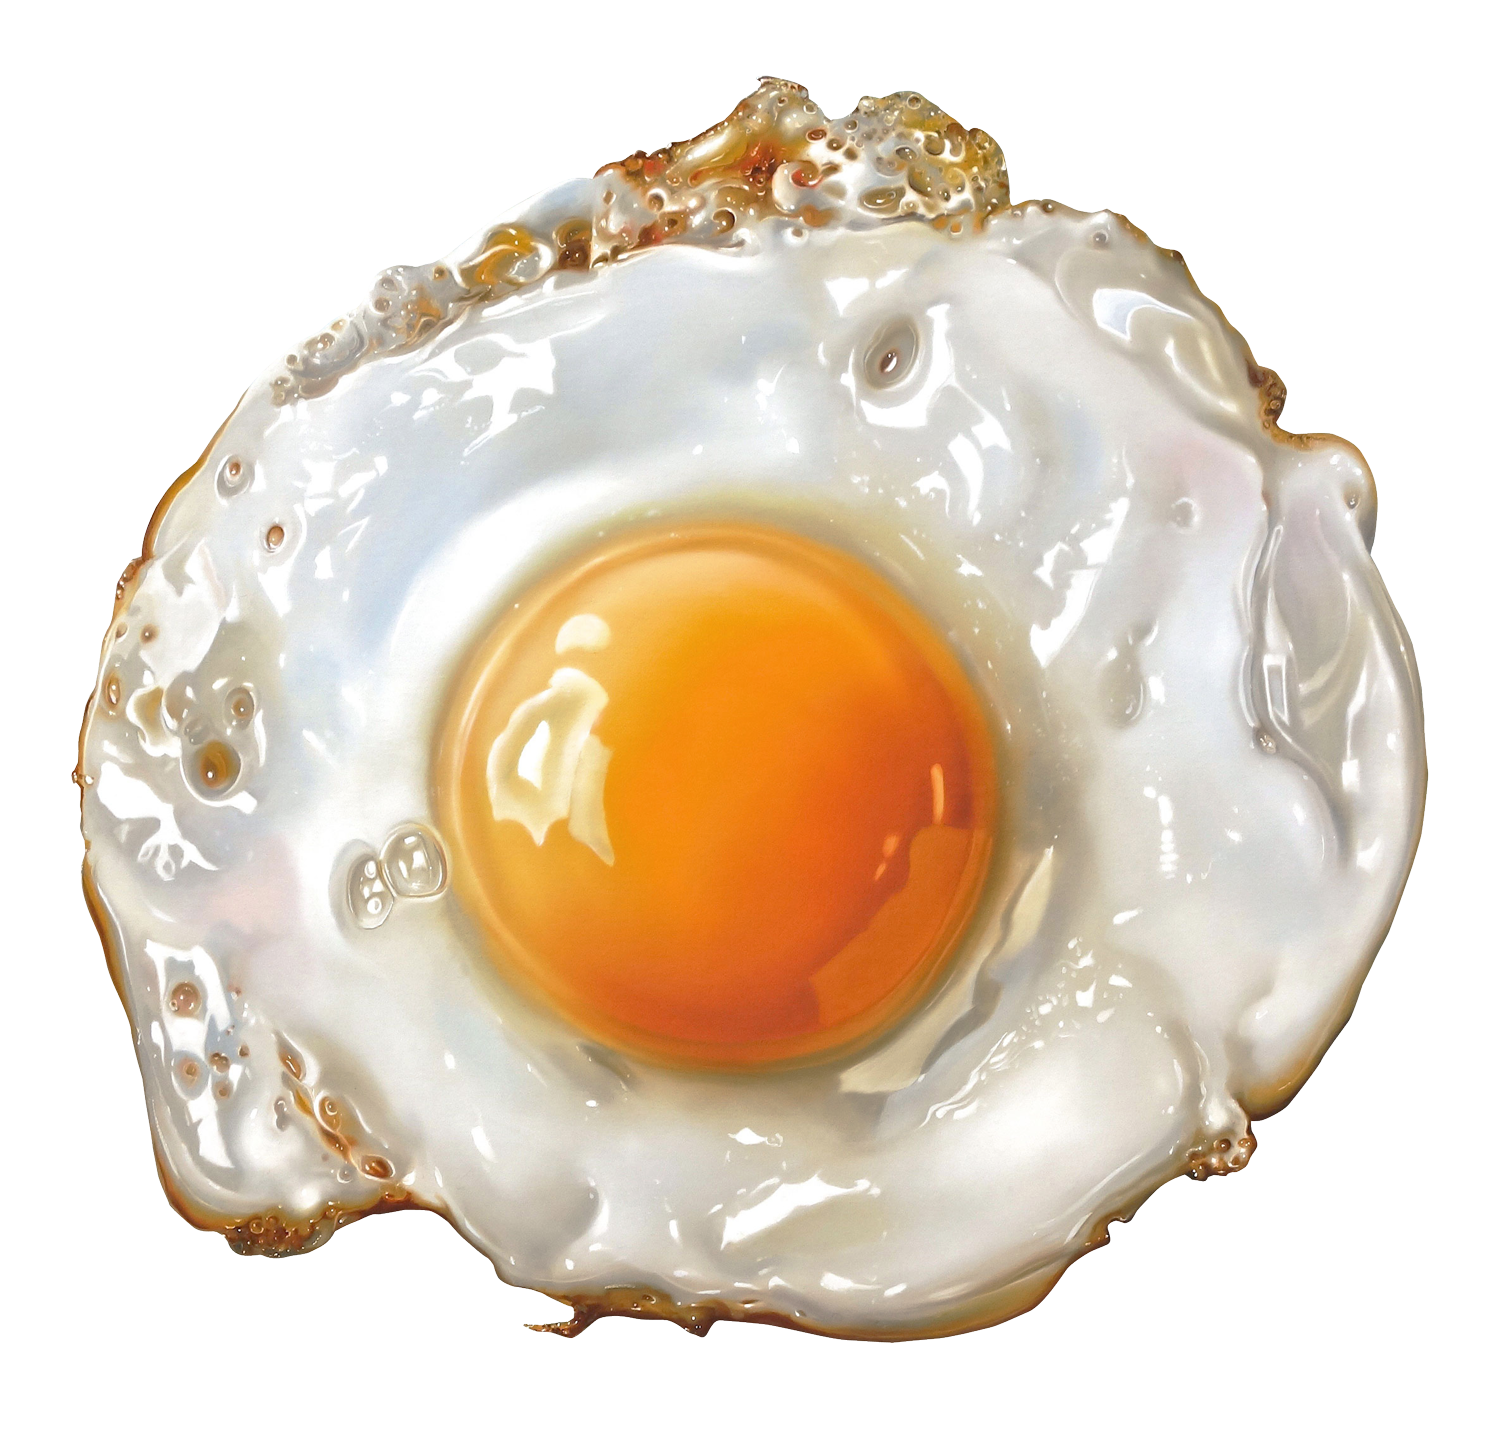 Fried Egg PNG Transparent Image - PngPix